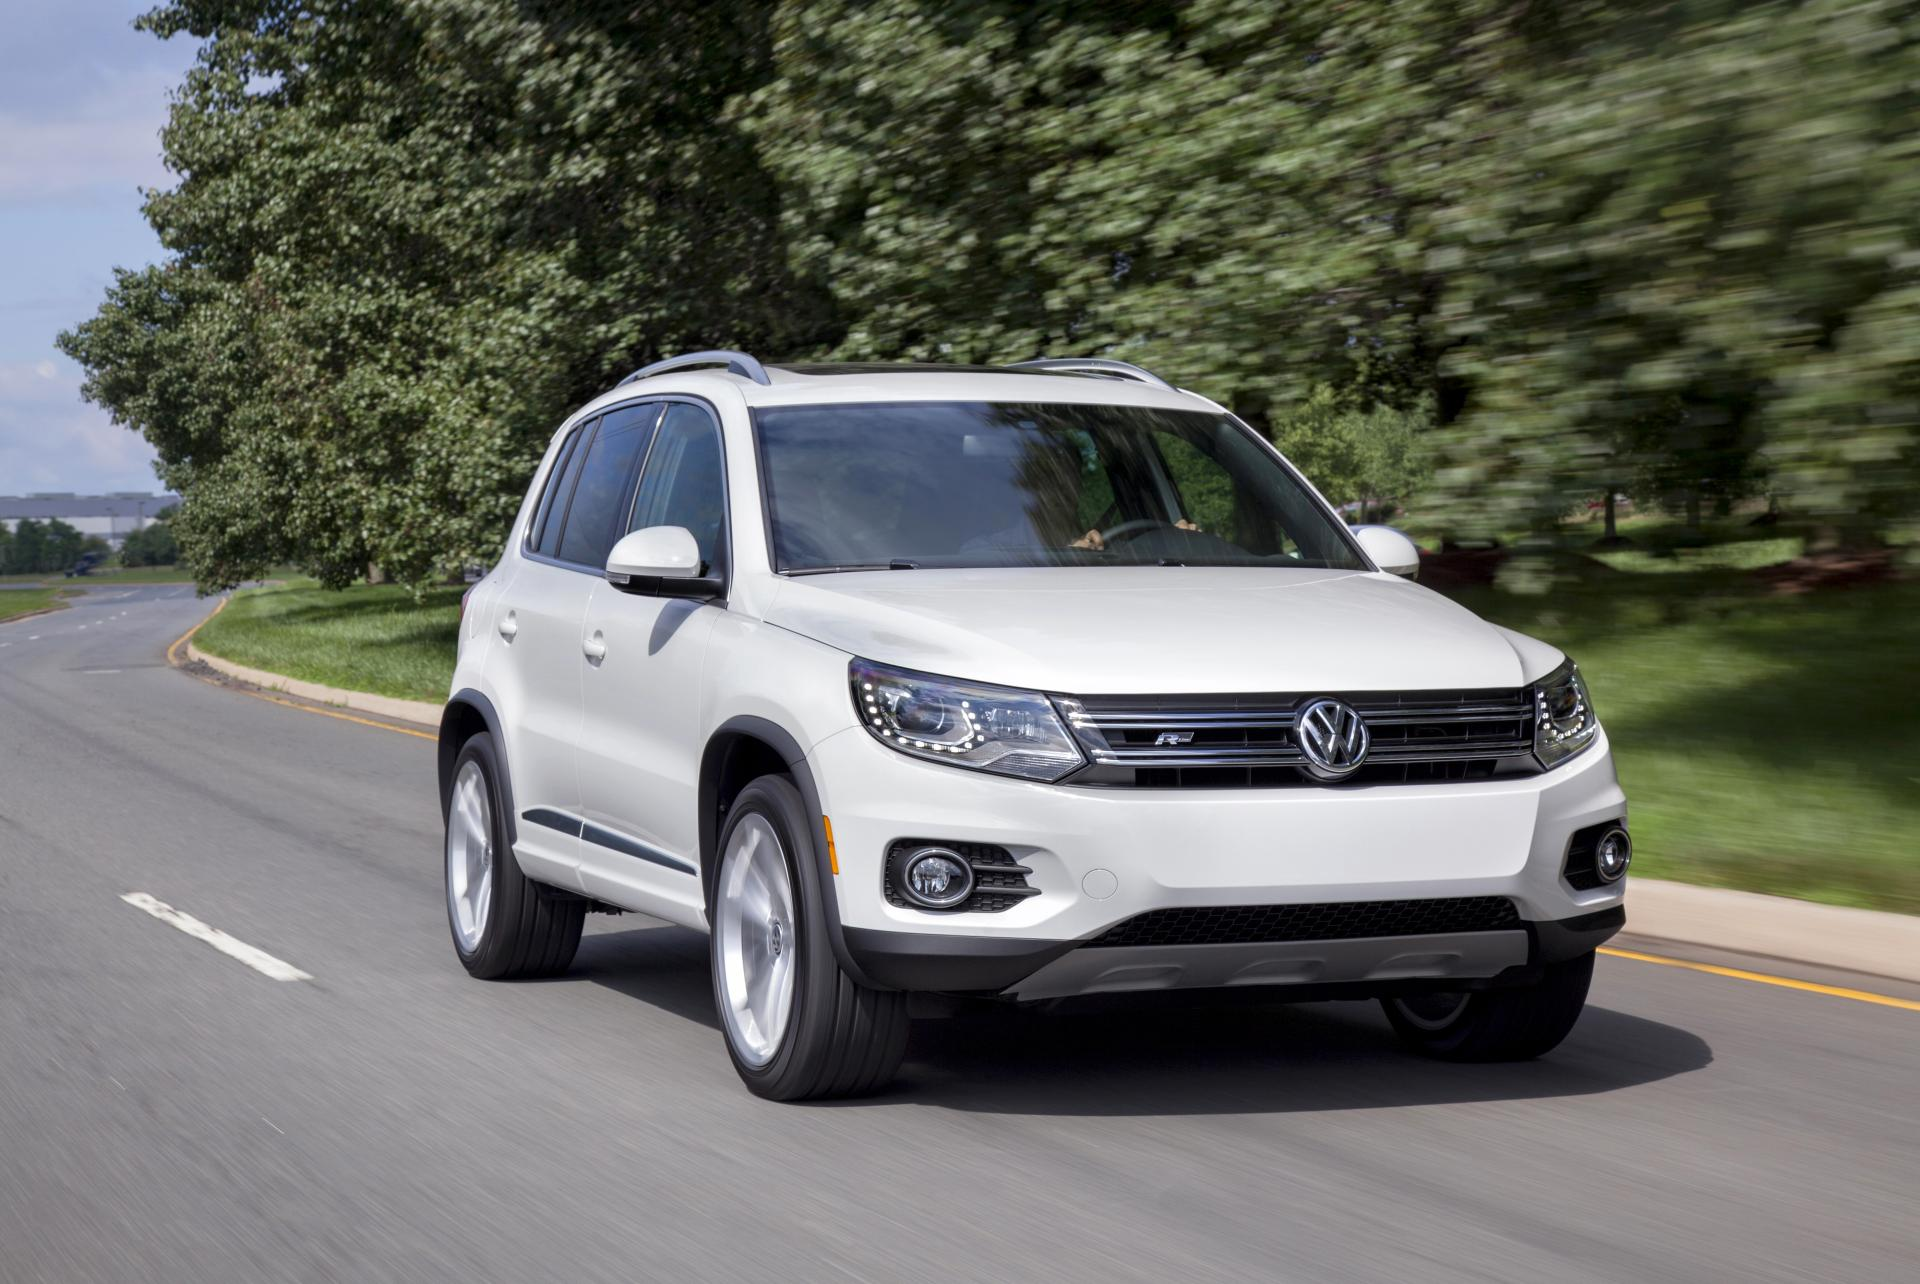 2014 volkswagen tiguan news and information. Black Bedroom Furniture Sets. Home Design Ideas